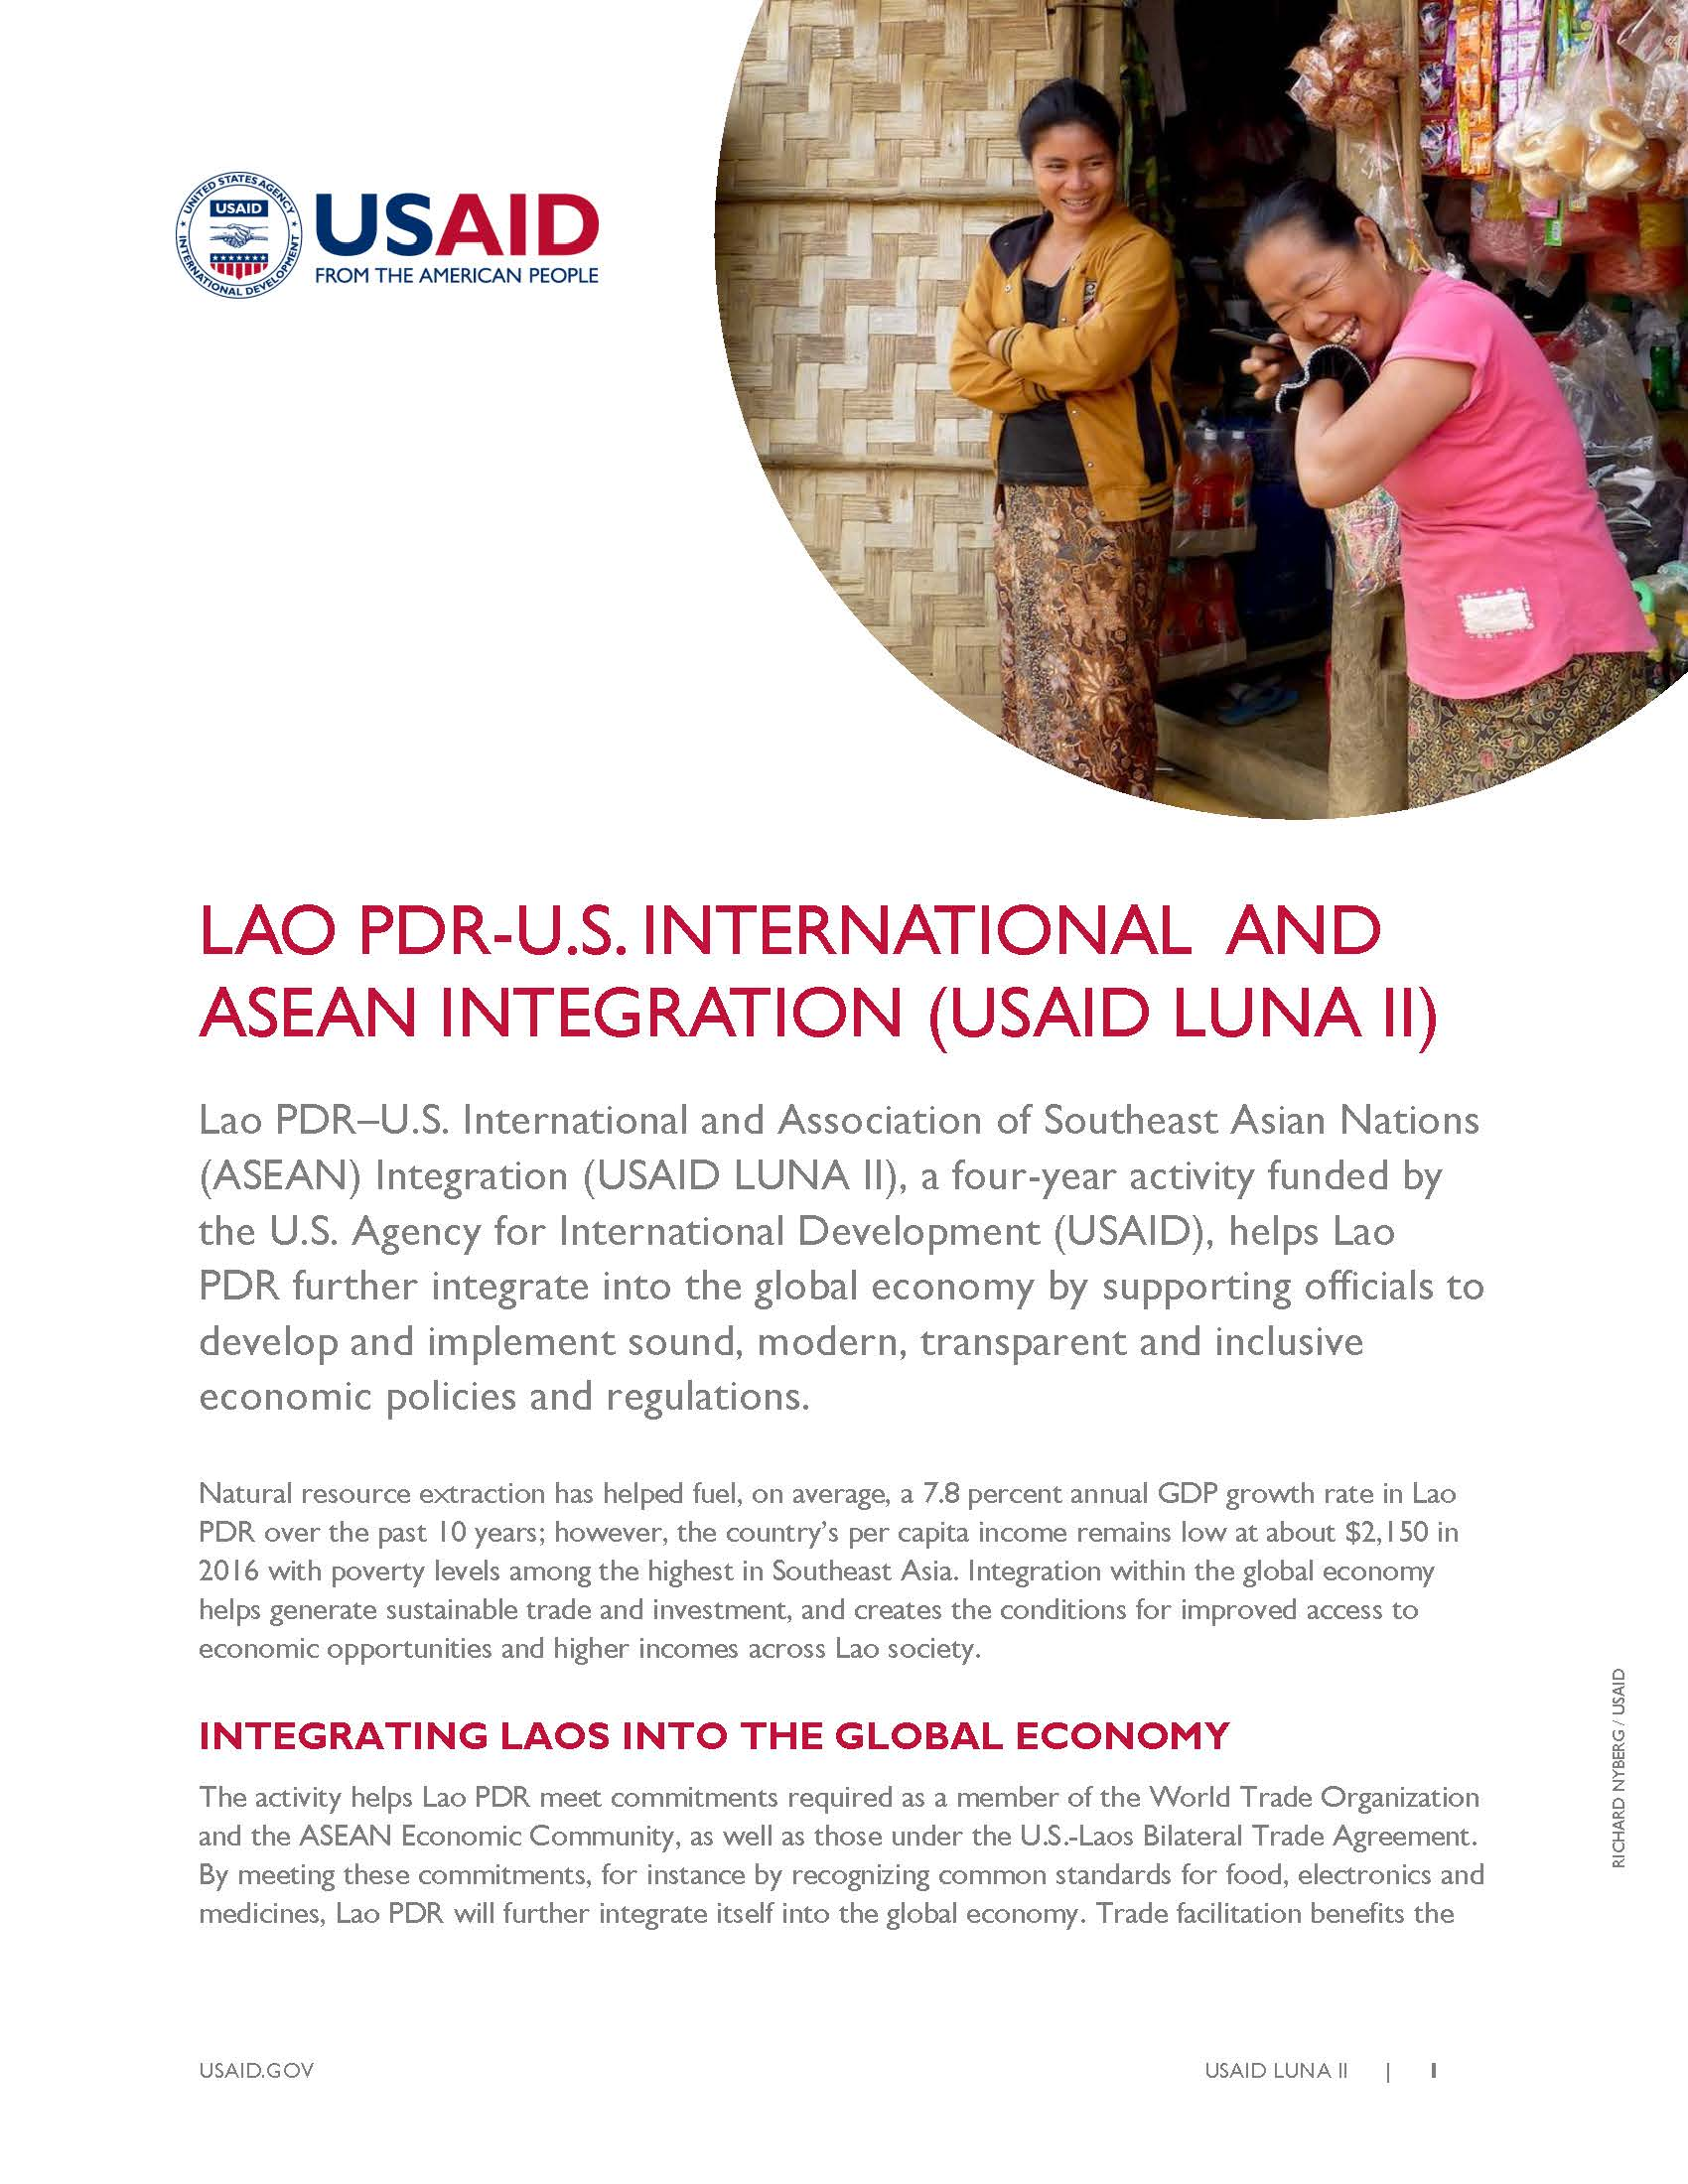 Lao Pdrus International And Asean Integration Fact Sheet Asia